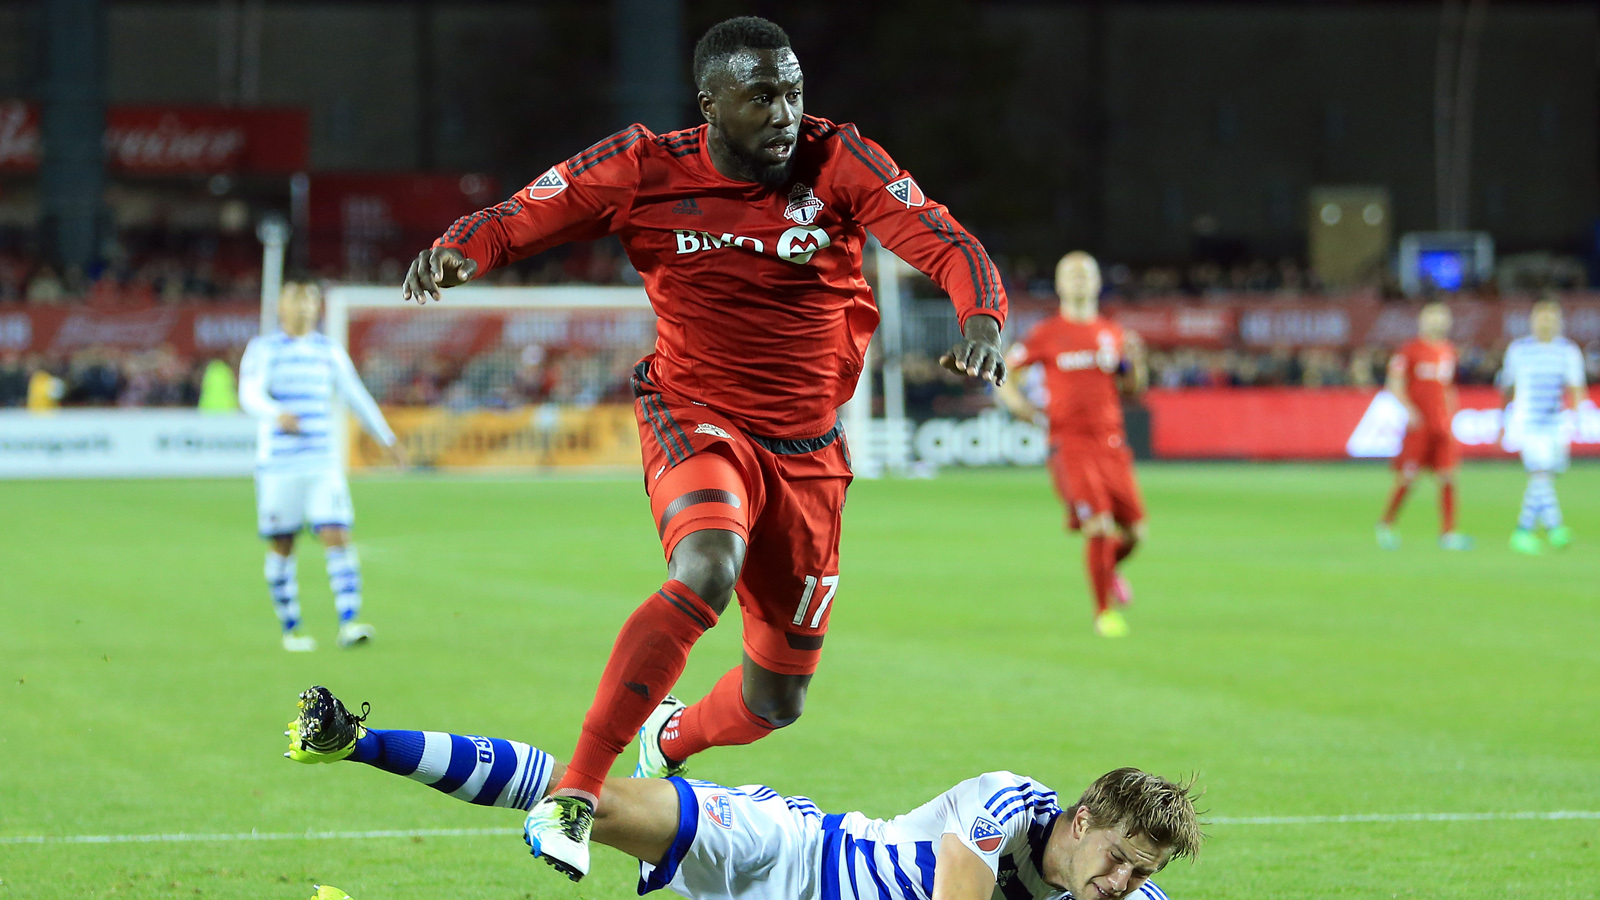 Jozy Altidore's scoring spree continues and he may be in his best form ever